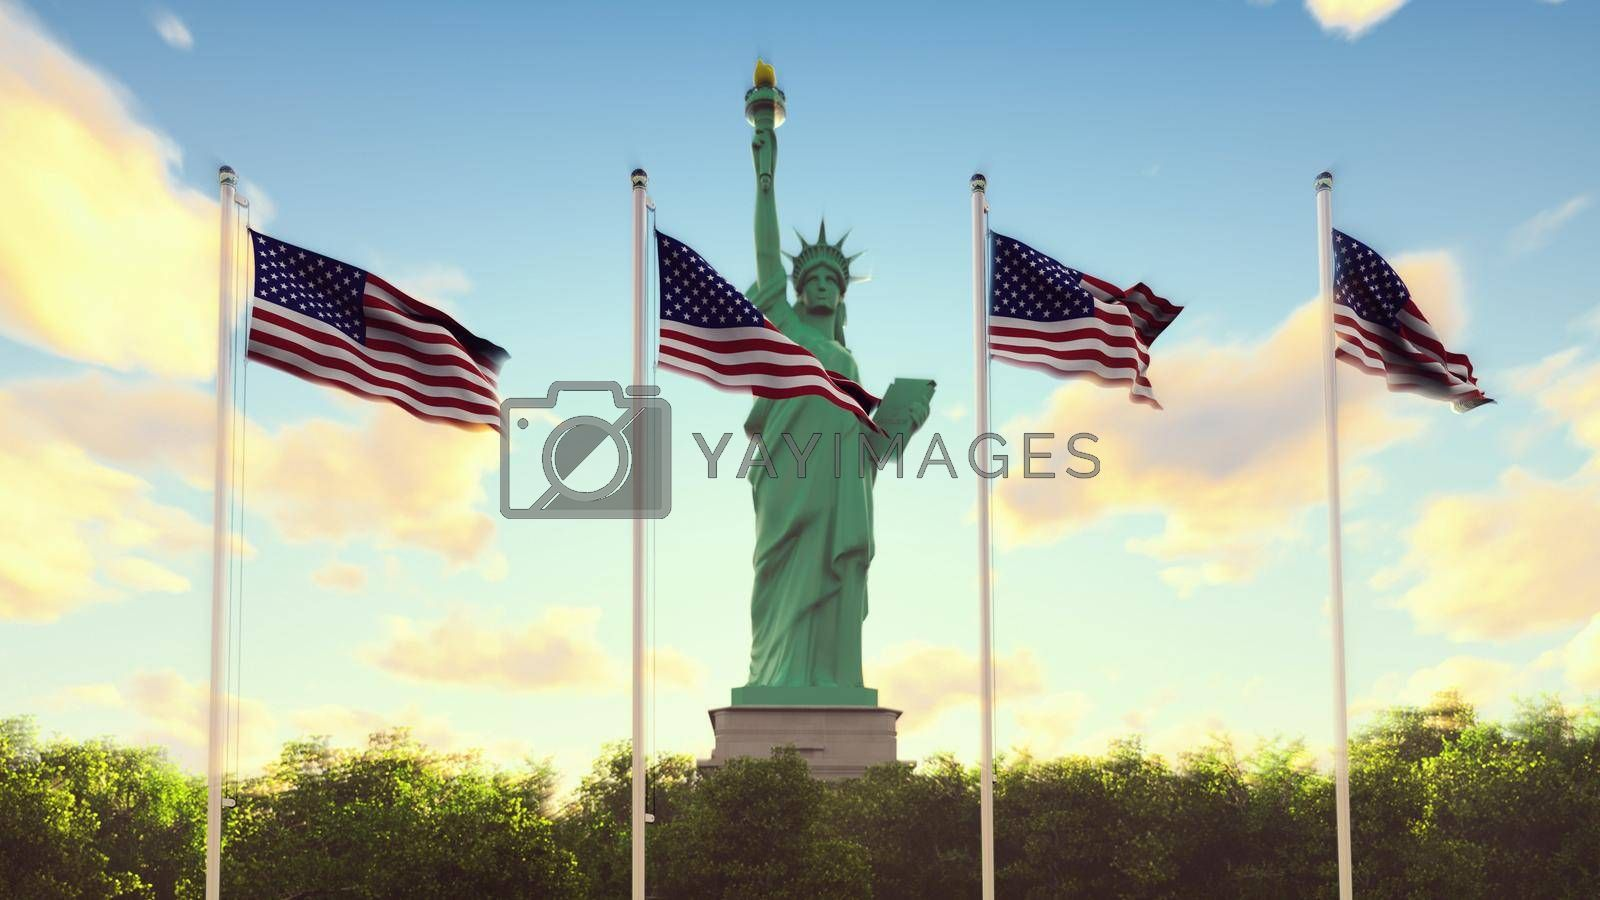 Royalty free image of The American flags flutters in the wind on a sunrise against the blue sky and the Statue of Liberty. 3D Rendering by designprojects